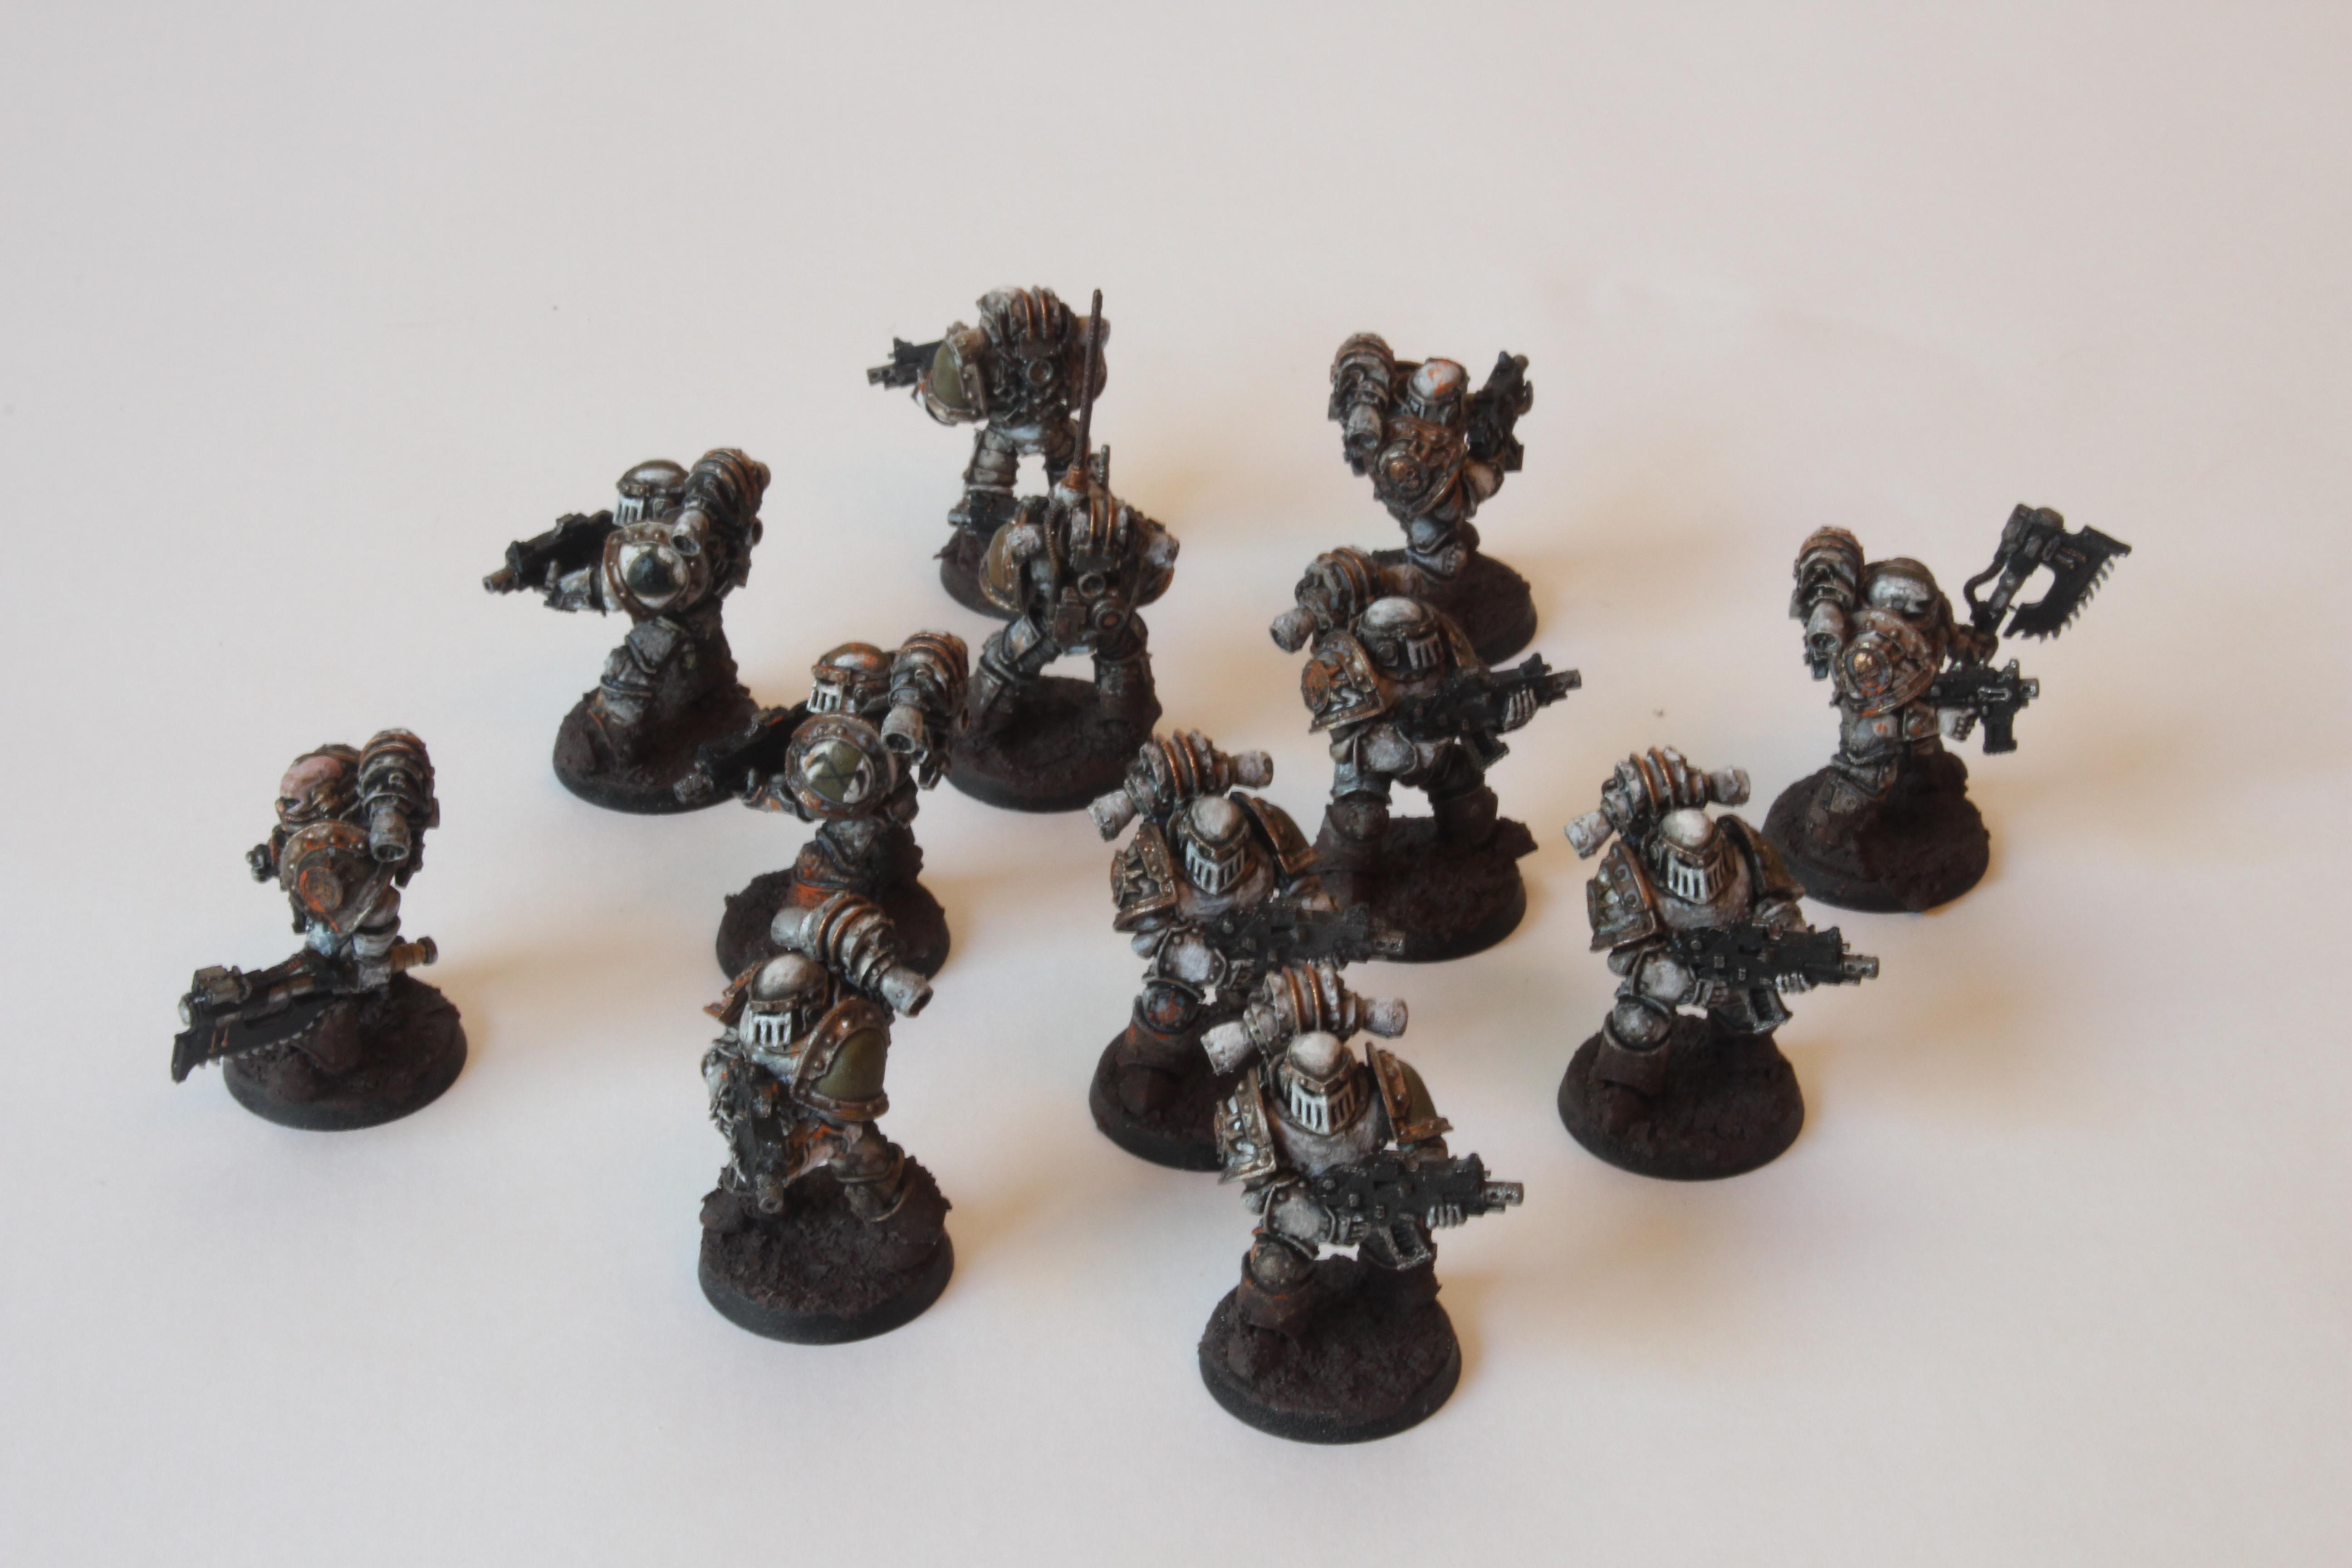 14th Legion, 30k, Bolters, Chaos Space Marines, Death Guard, Forge World, Frag Grenades, Horus Heresy, Nuncio-vox, Nurgle, Power Armor, Power Axe, Tactical Squad, Troops